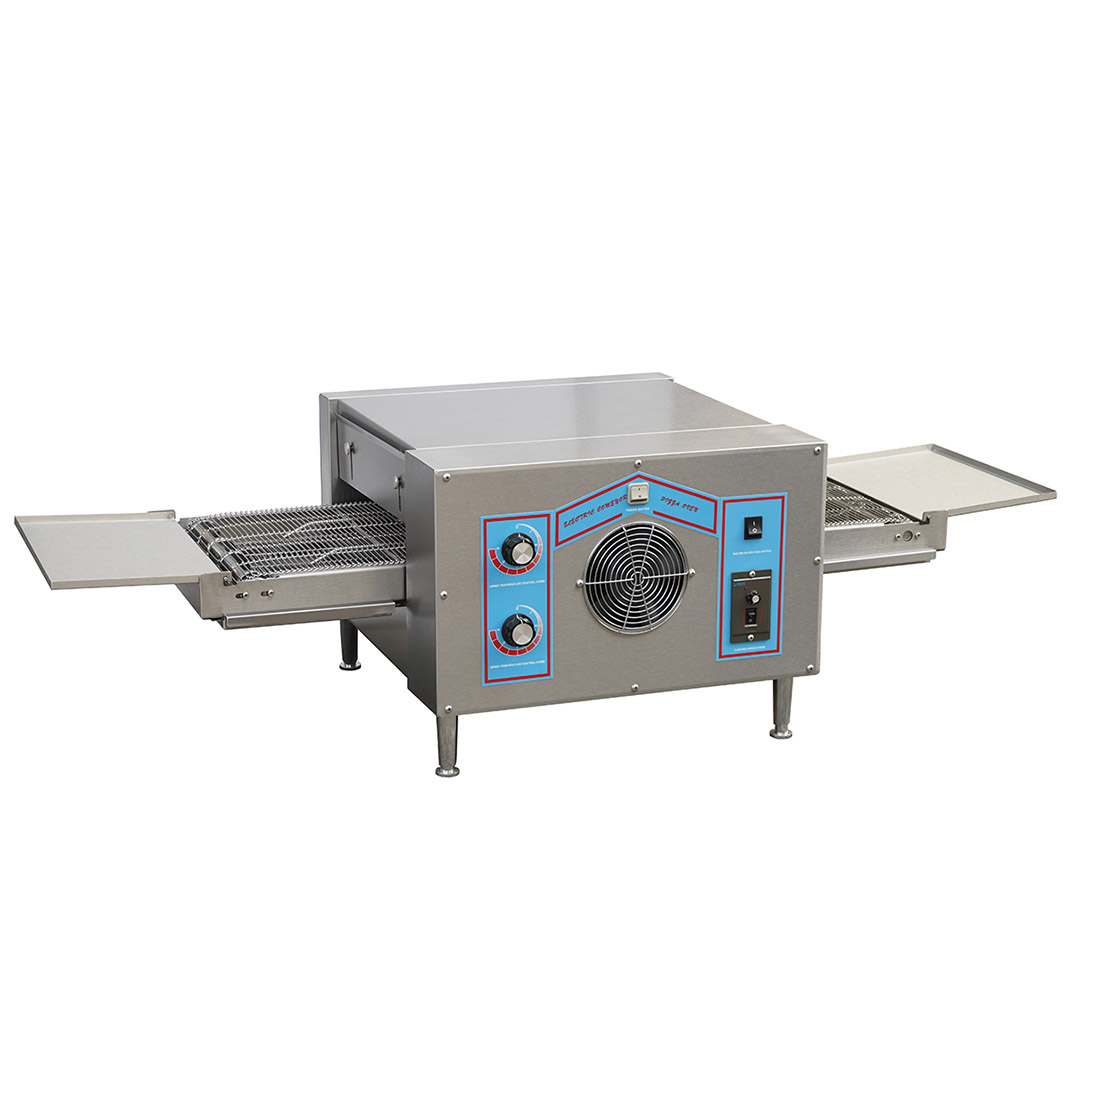 HX-1/3NE Pizza Conveyor Oven with 3 phase power